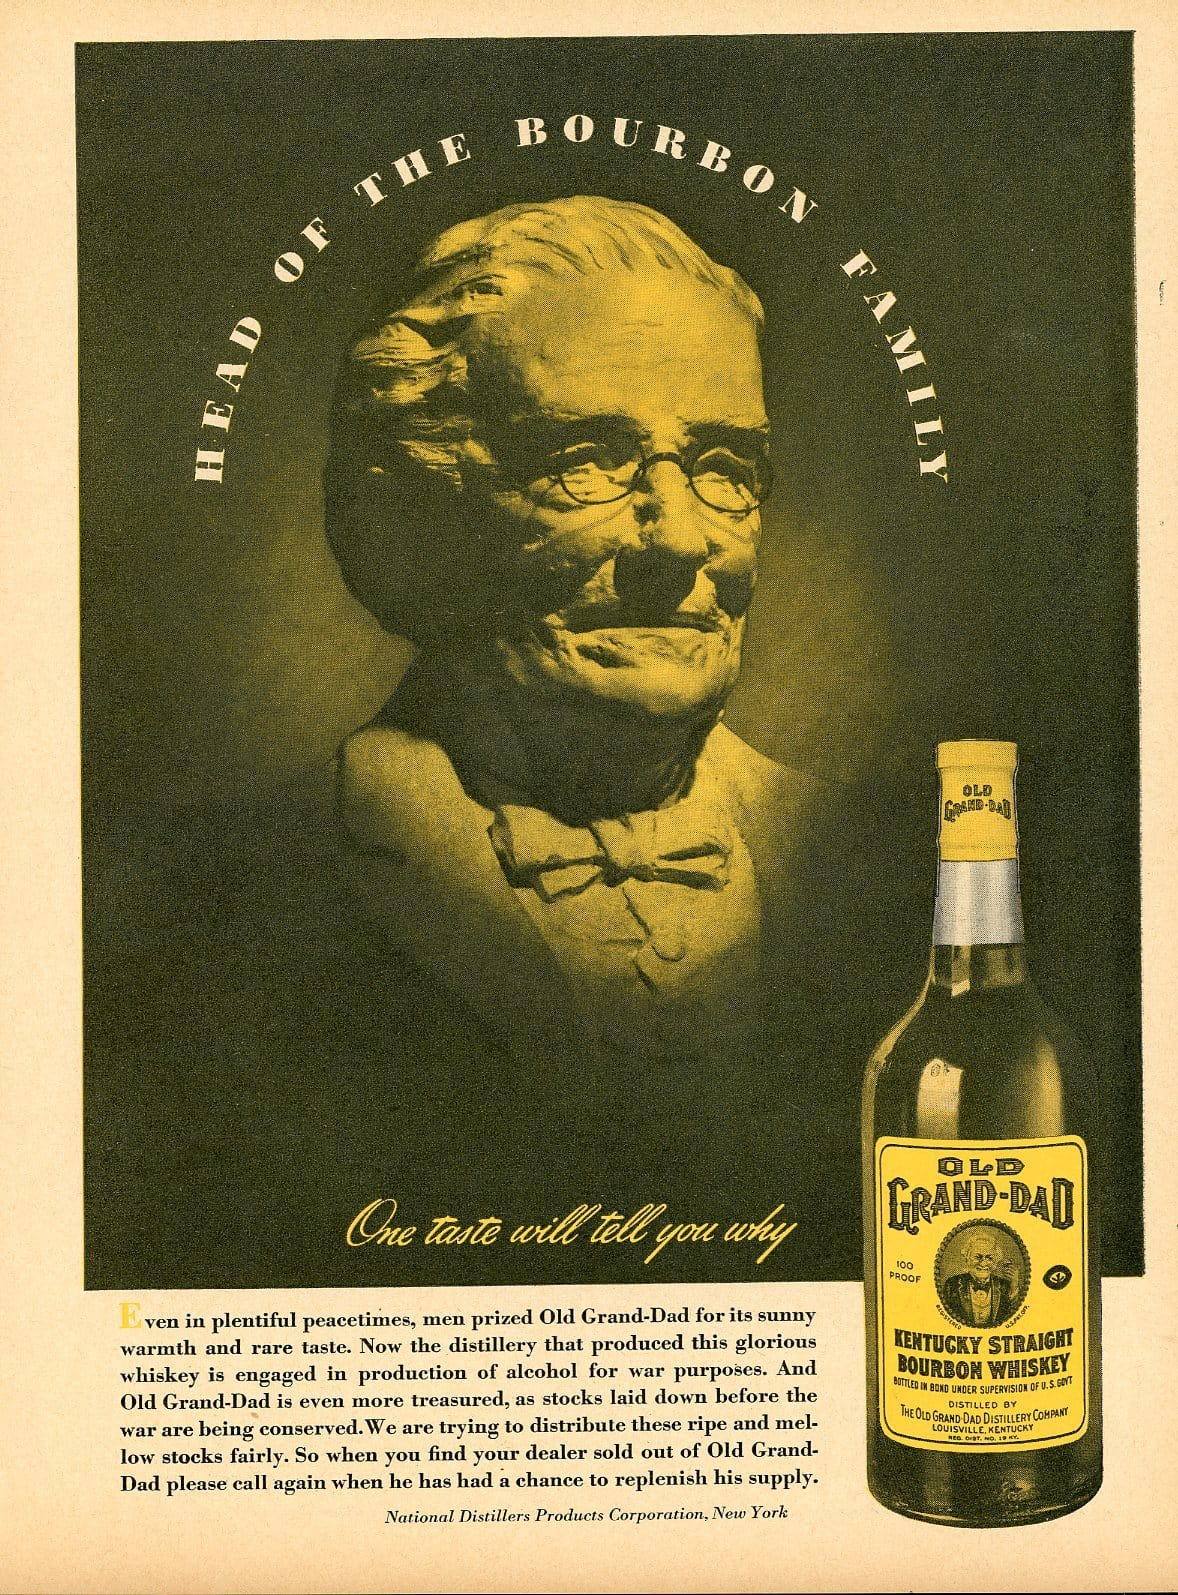 1940's Old Grand-Dad Bourbon Whiskey Advertisement - Bar Room Decor - Antique Liquor Print Ad